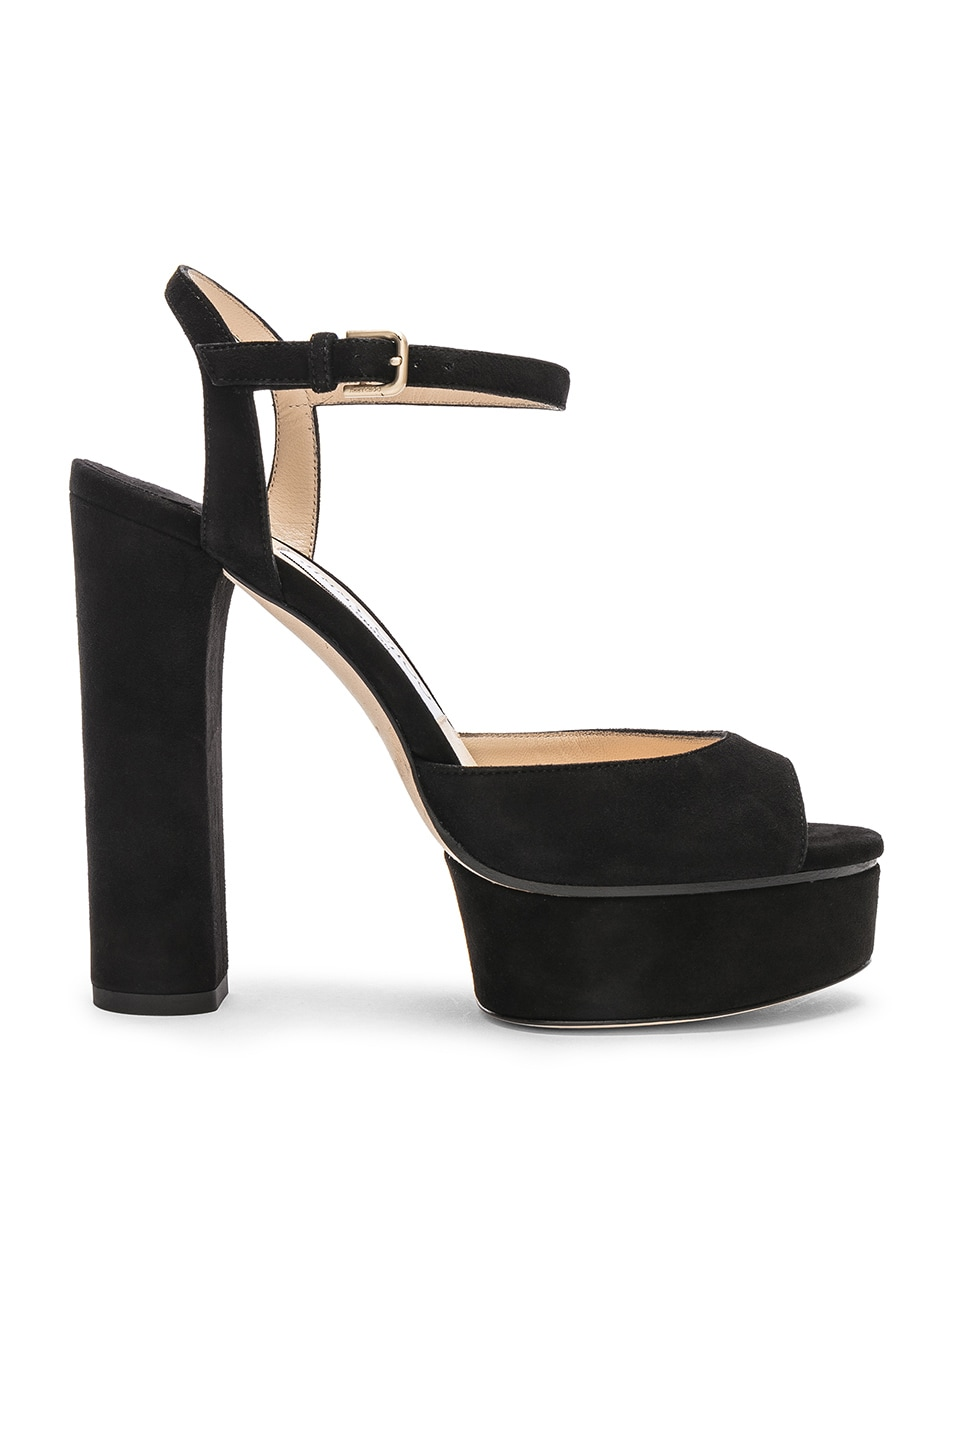 Image 1 of Jimmy Choo Peachy 125 Suede Platform in Black